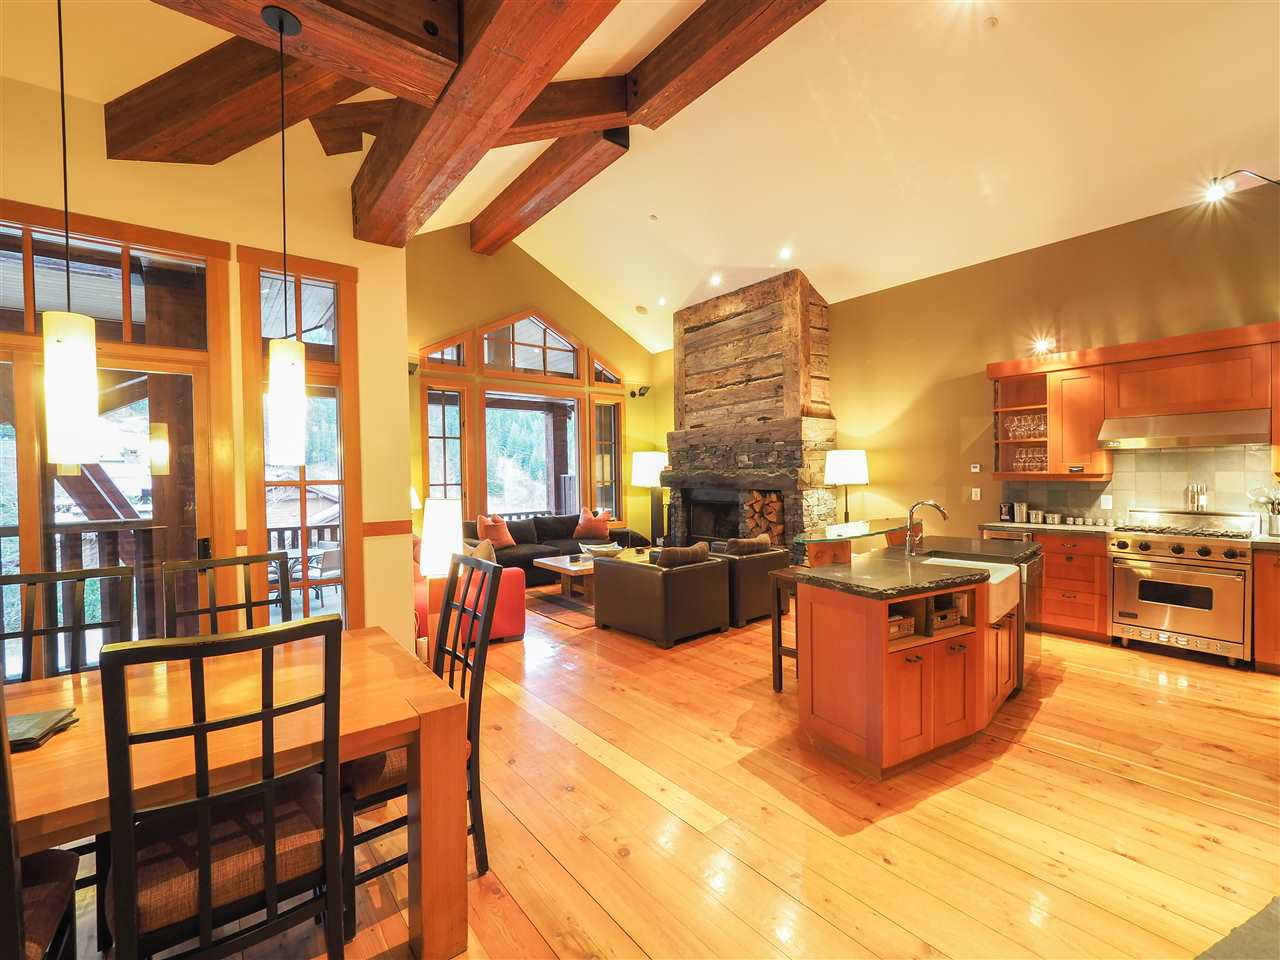 21A 2300 NORDIC DRIVE, Whistler